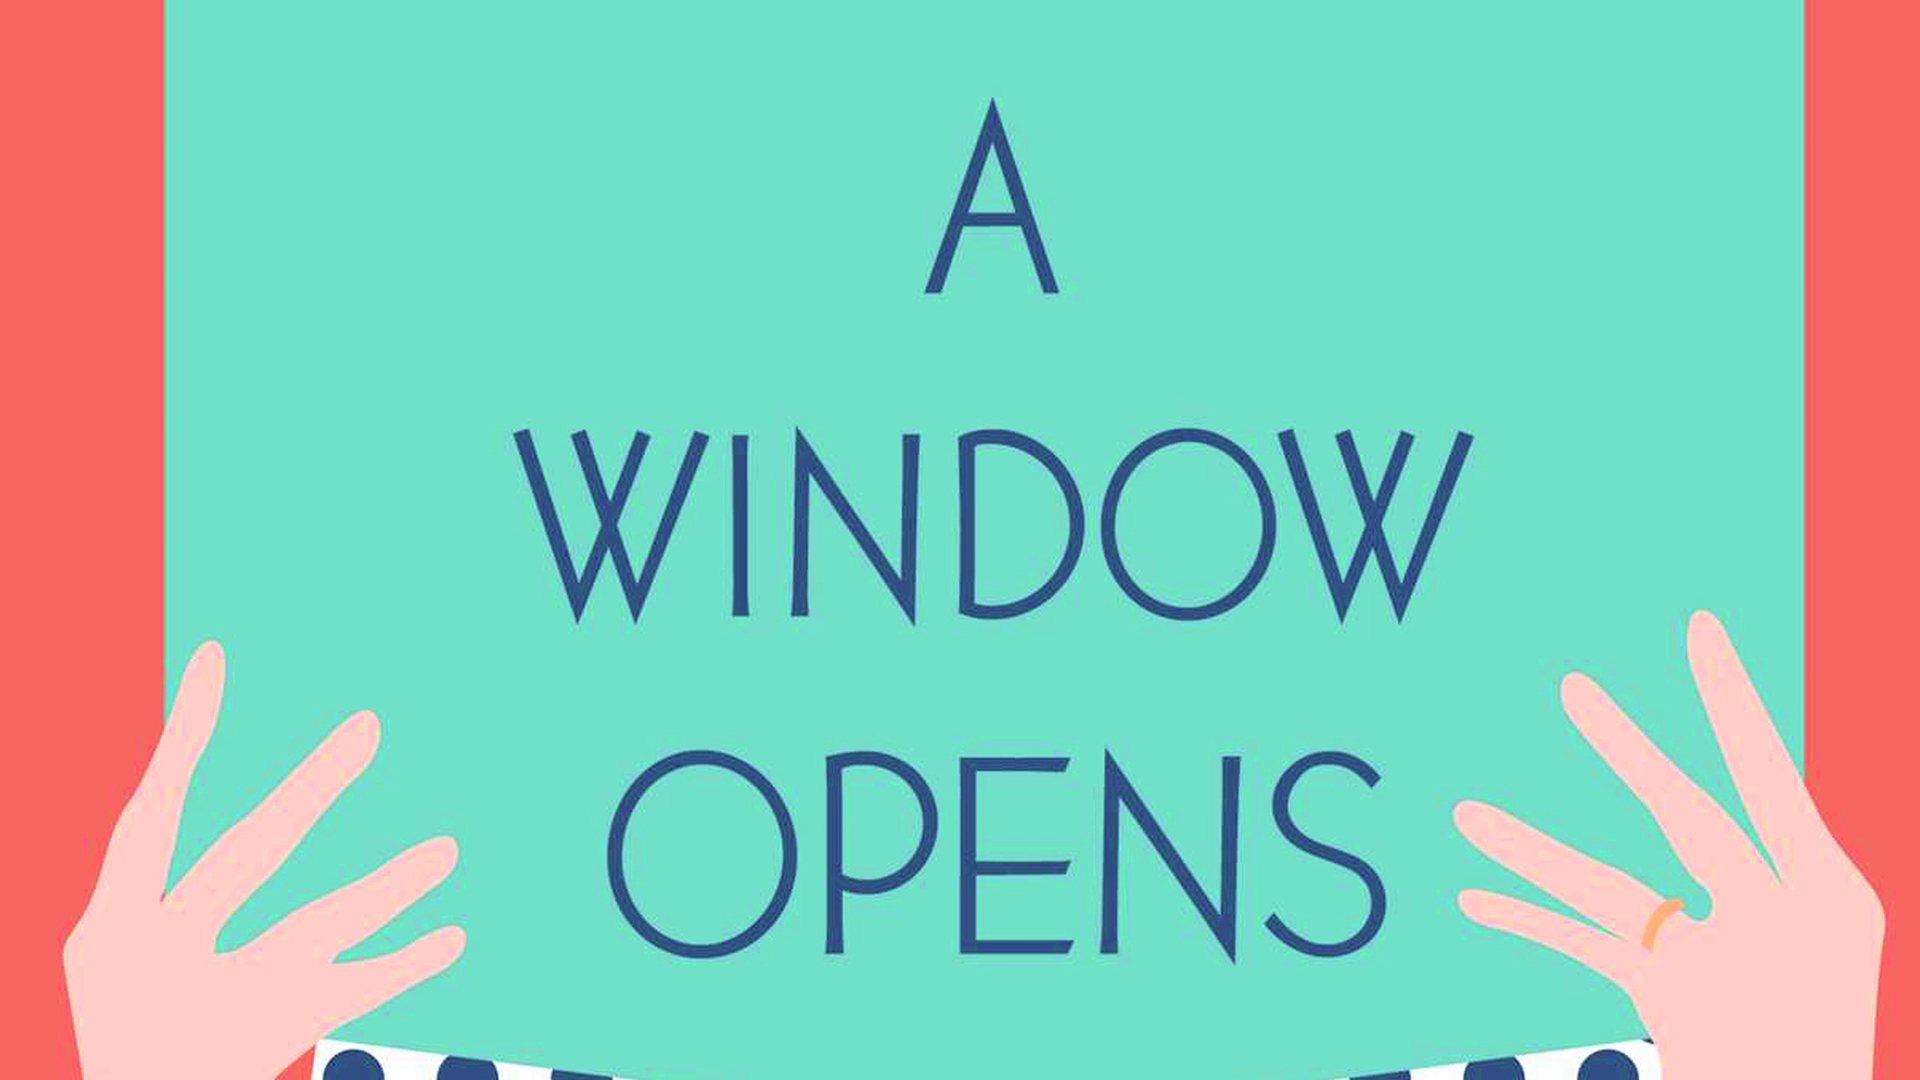 'A Window Opens' by Elisabeth Egan